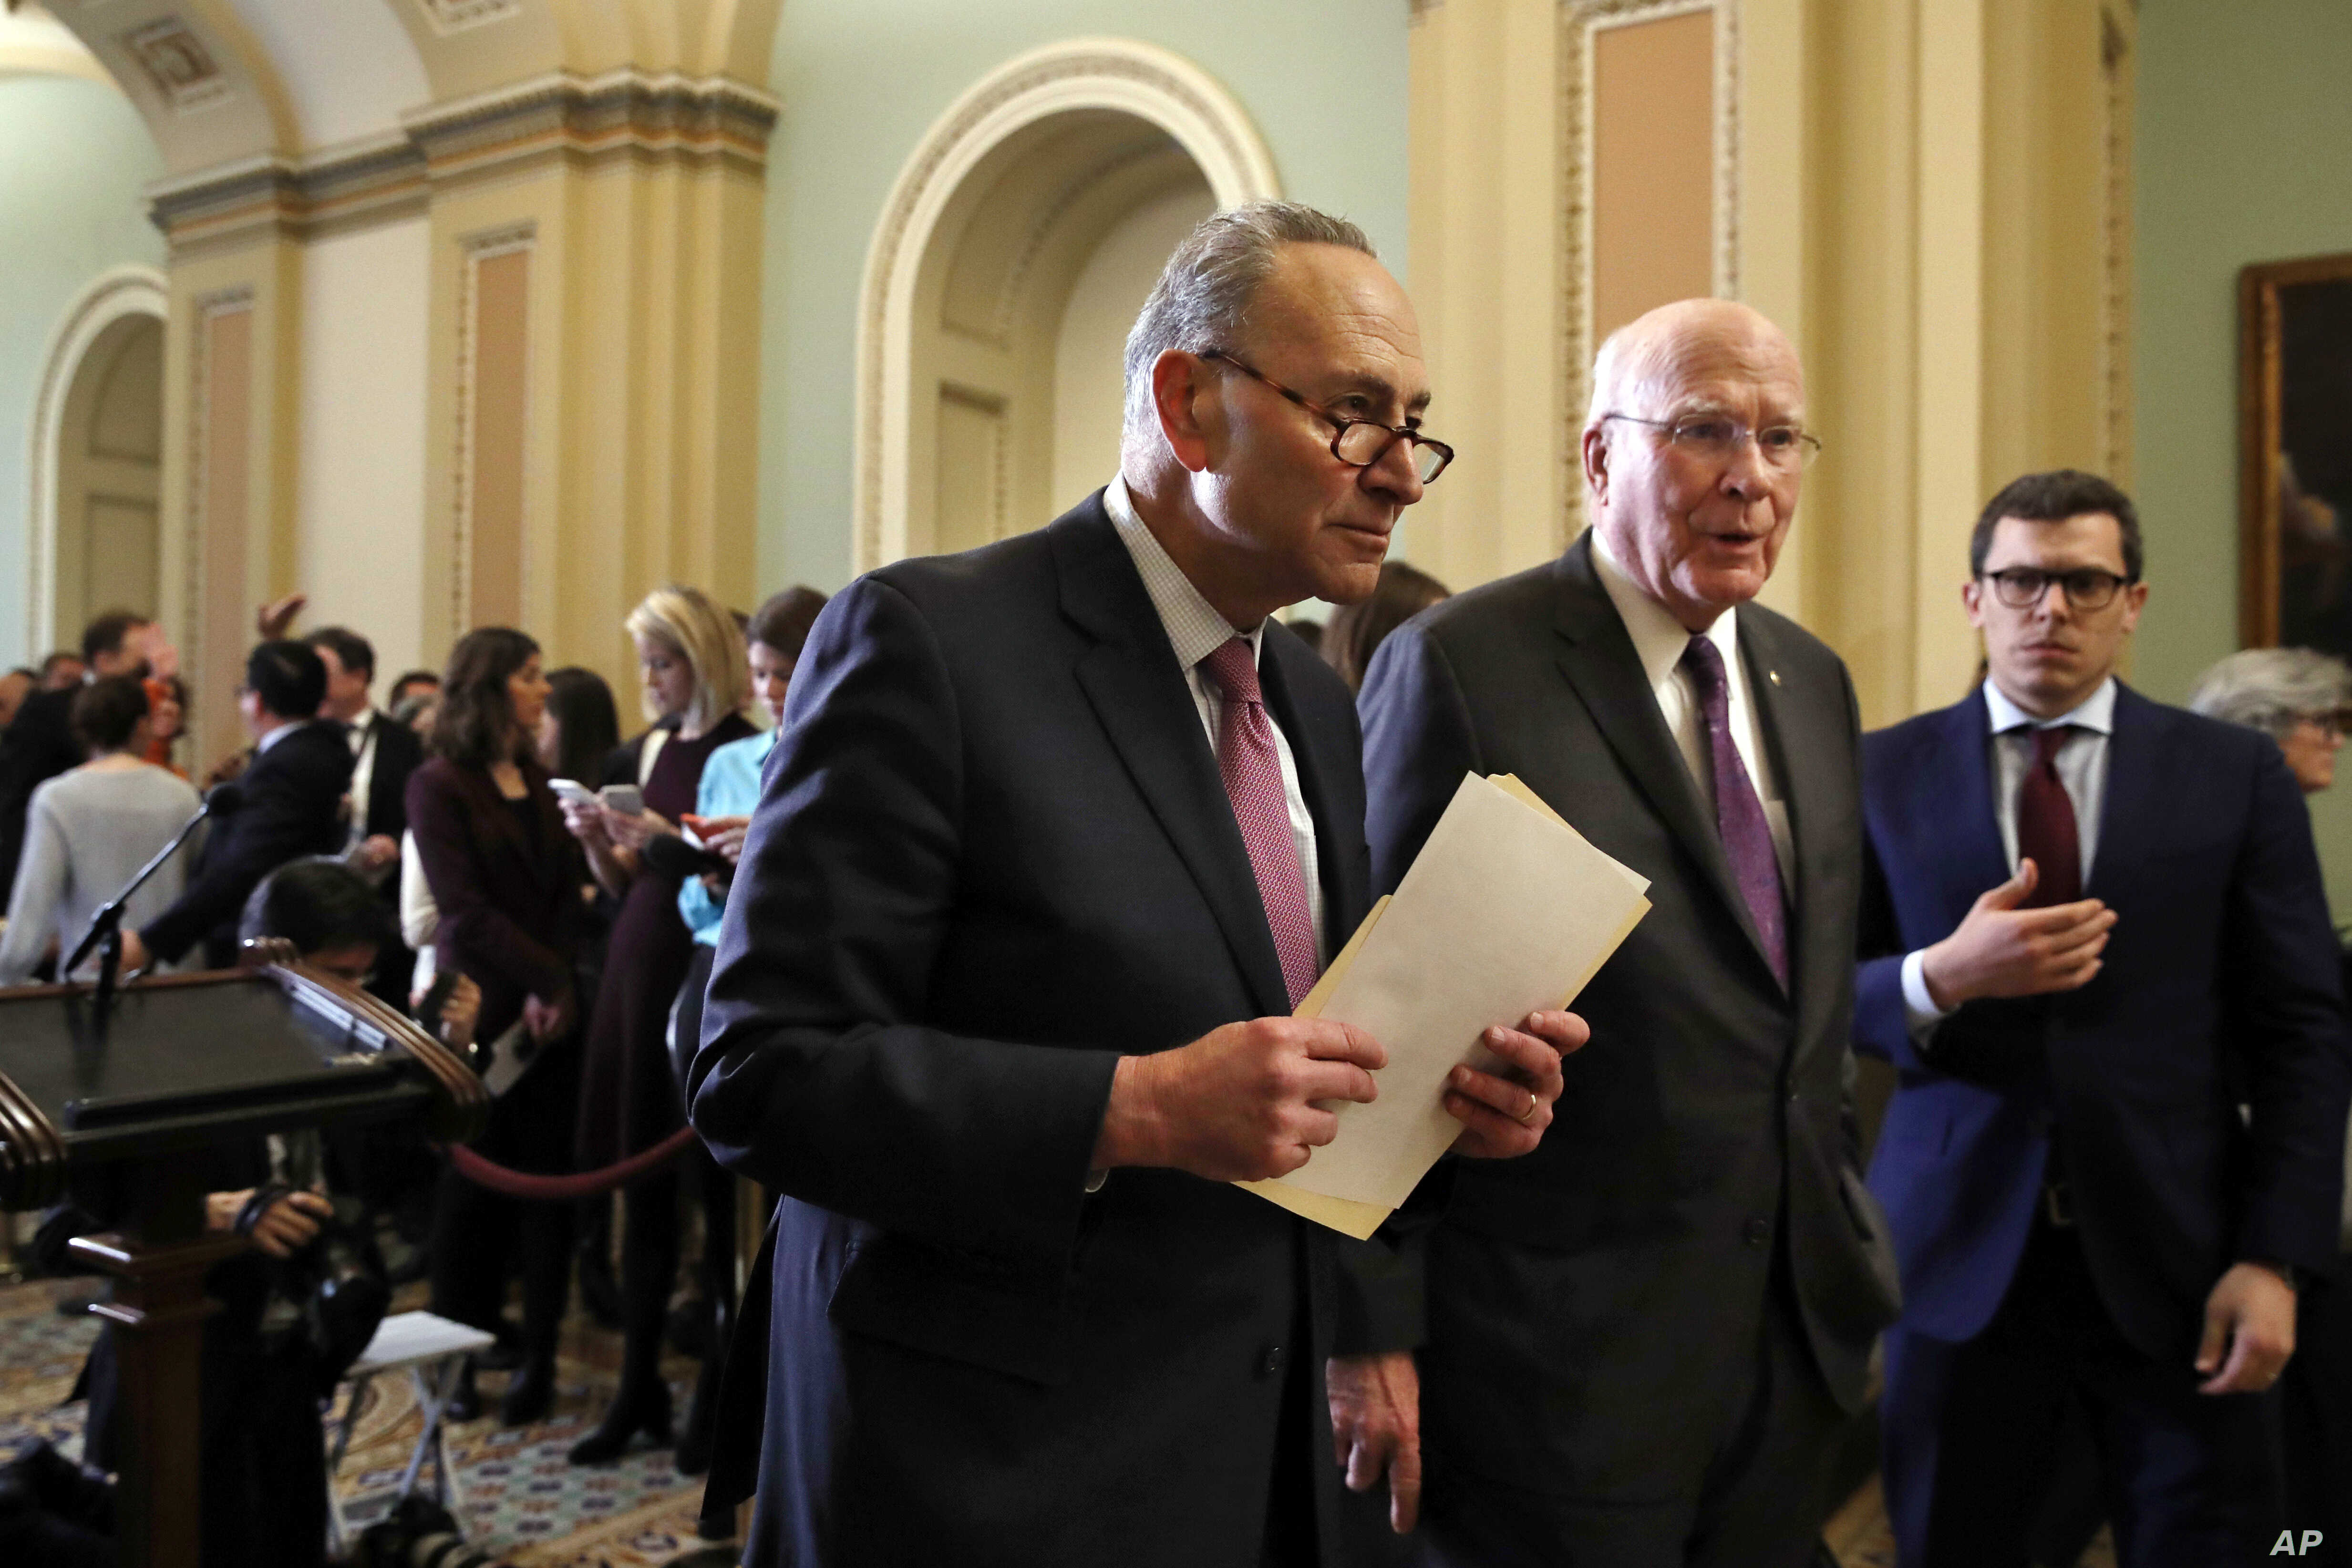 Senate Minority Leader Sen. Chuck Schumer of New York, center, walks with Sen. Patrick Leahy, D-Vt., right, as they leave a news conference with Democratic leaders, March 20, 2018, on Capitol Hill in Washington.